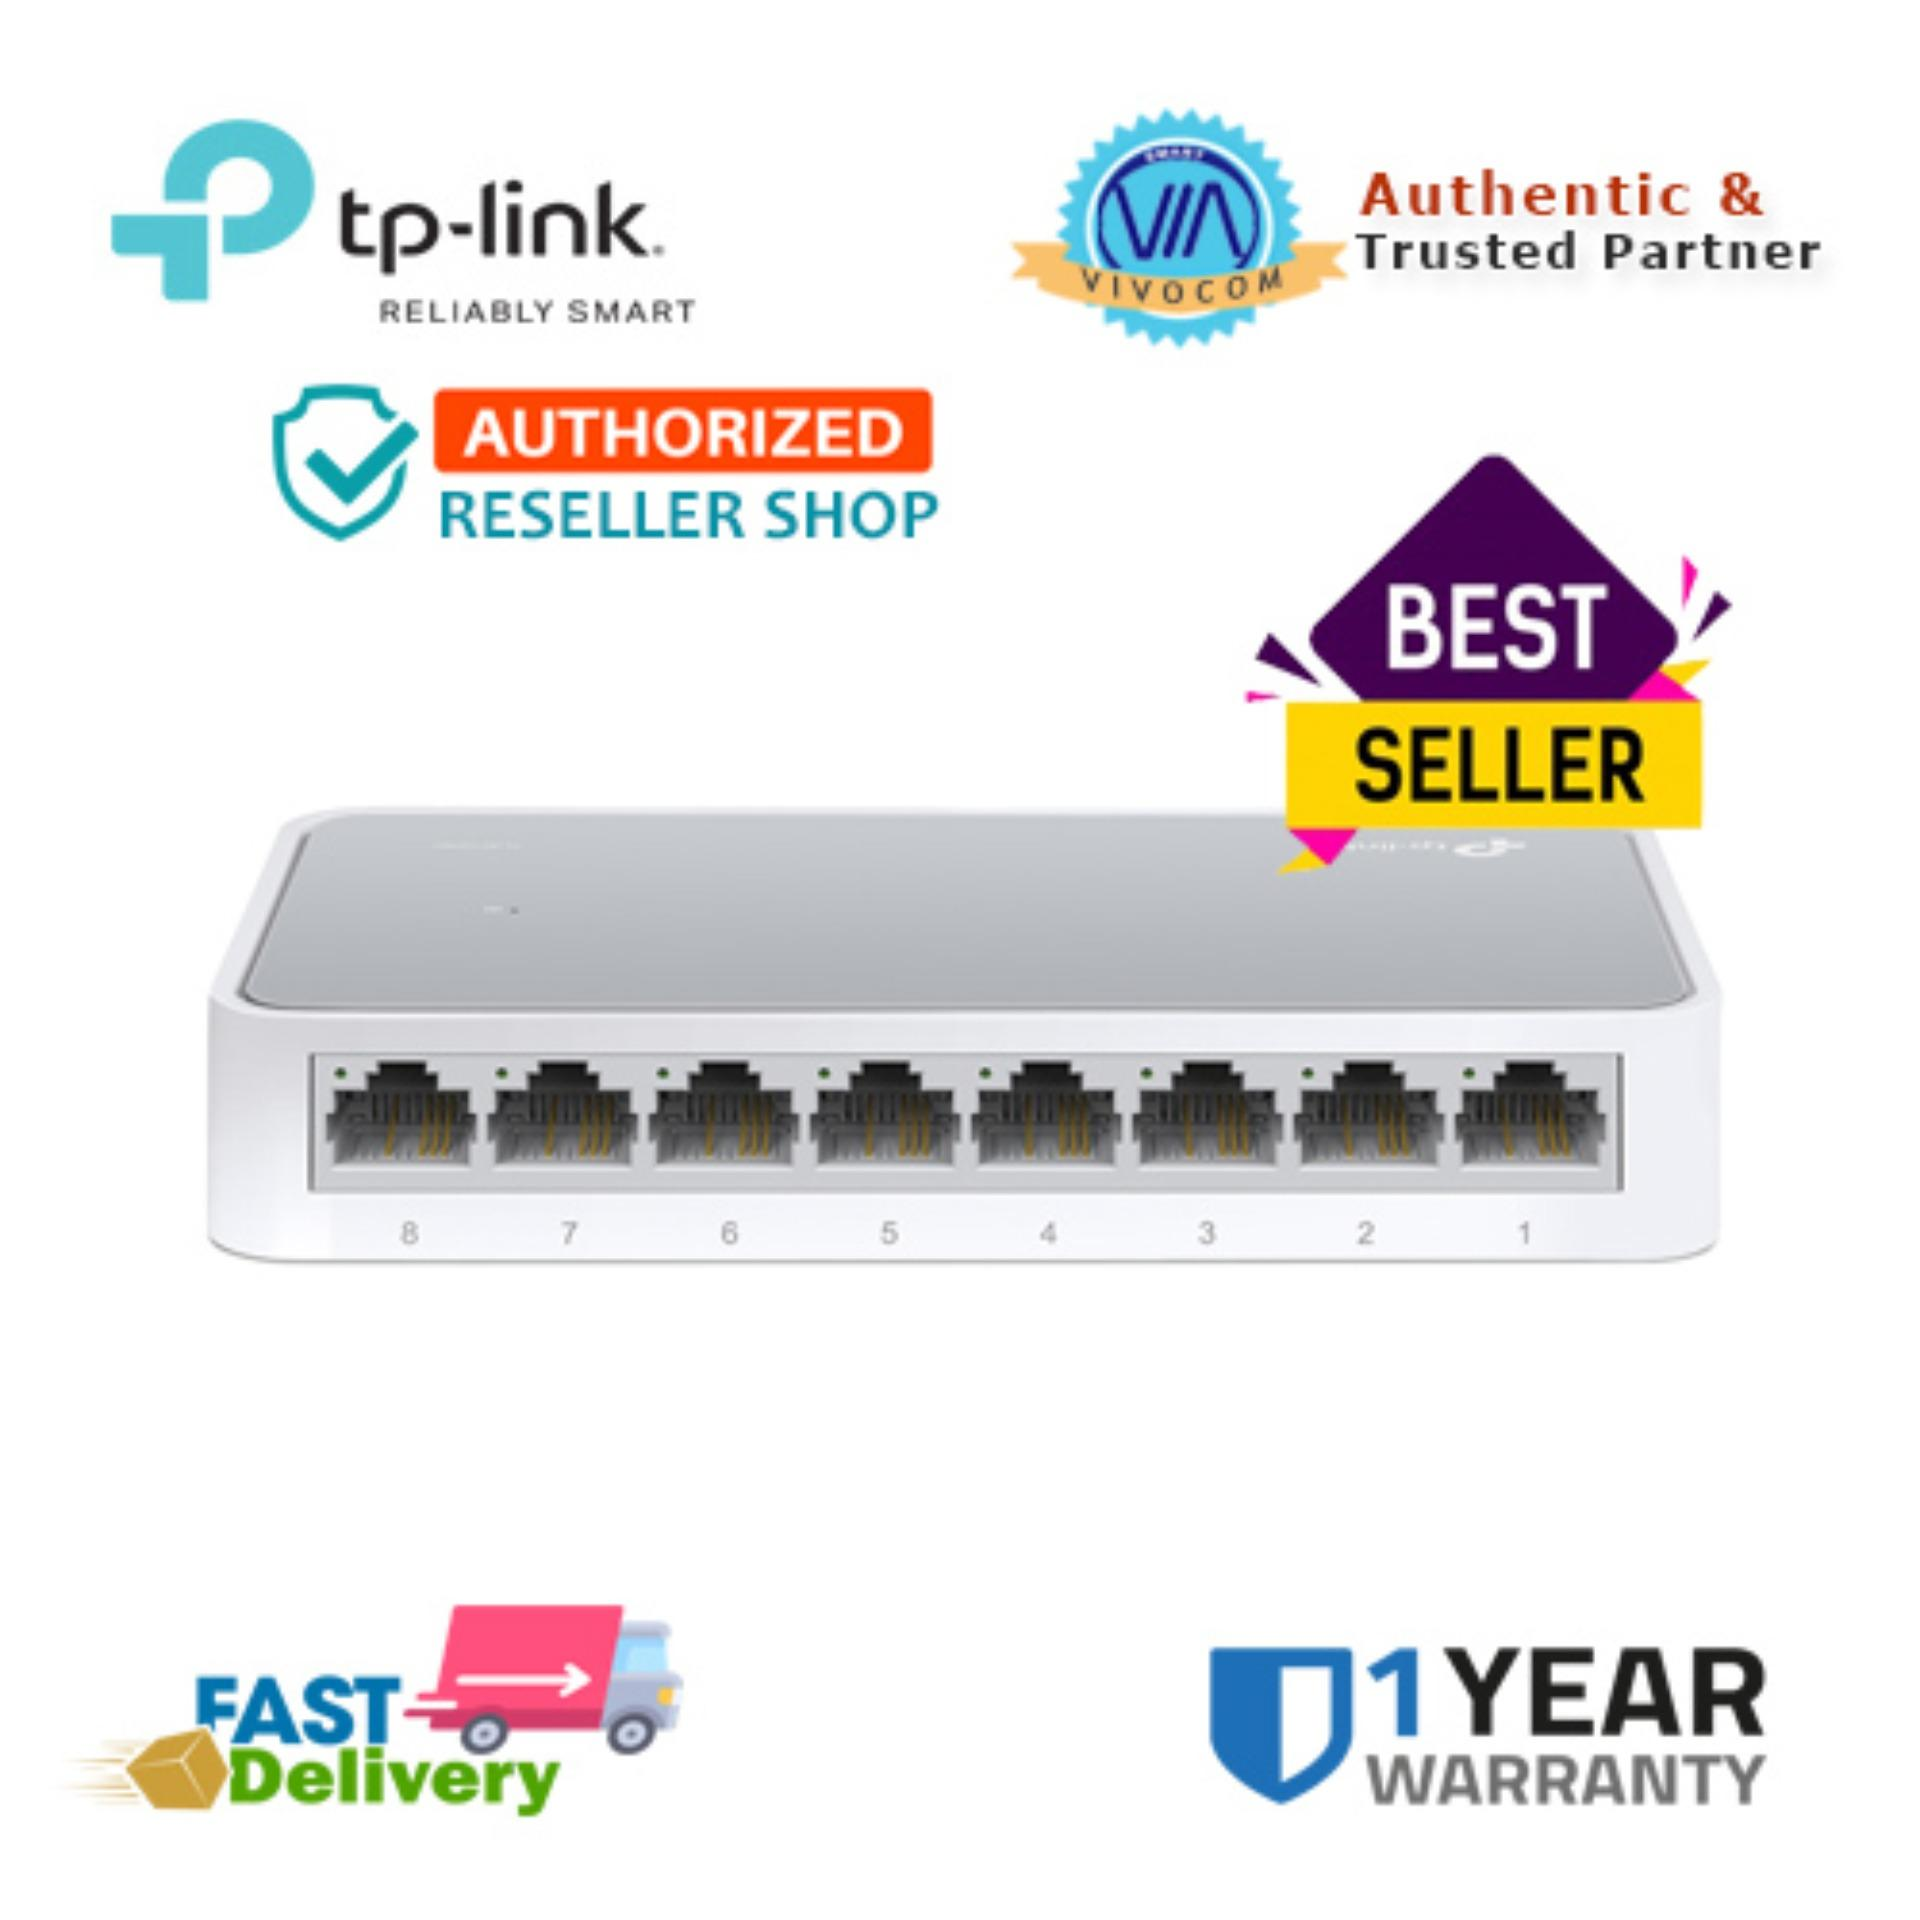 Tp-Link Tl-Sf1008d 8port 10/100mbps Switch By Vivocom Technologies Inc.